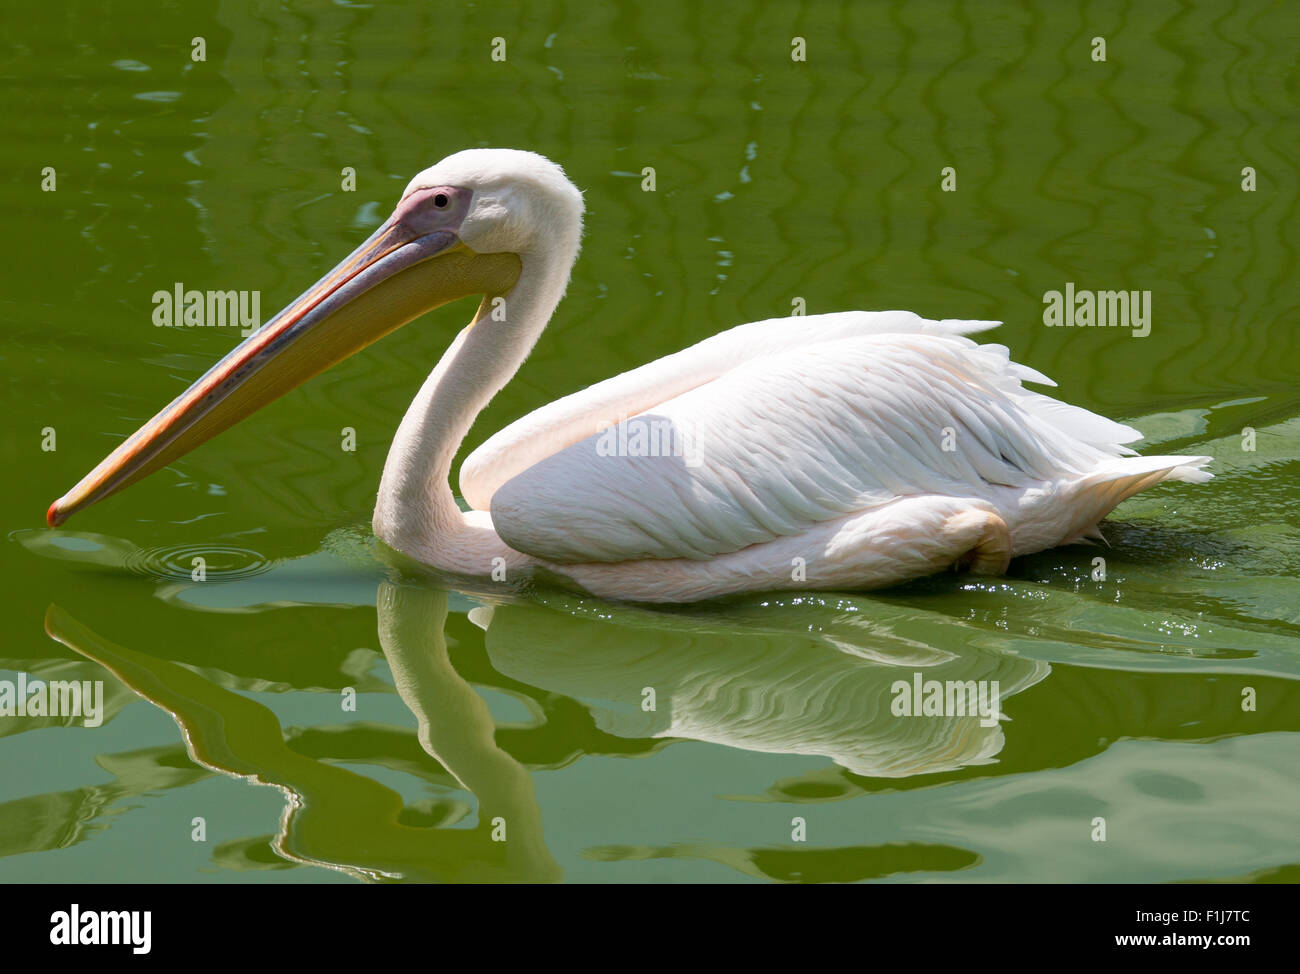 A pelican swimming in the water - Stock Image